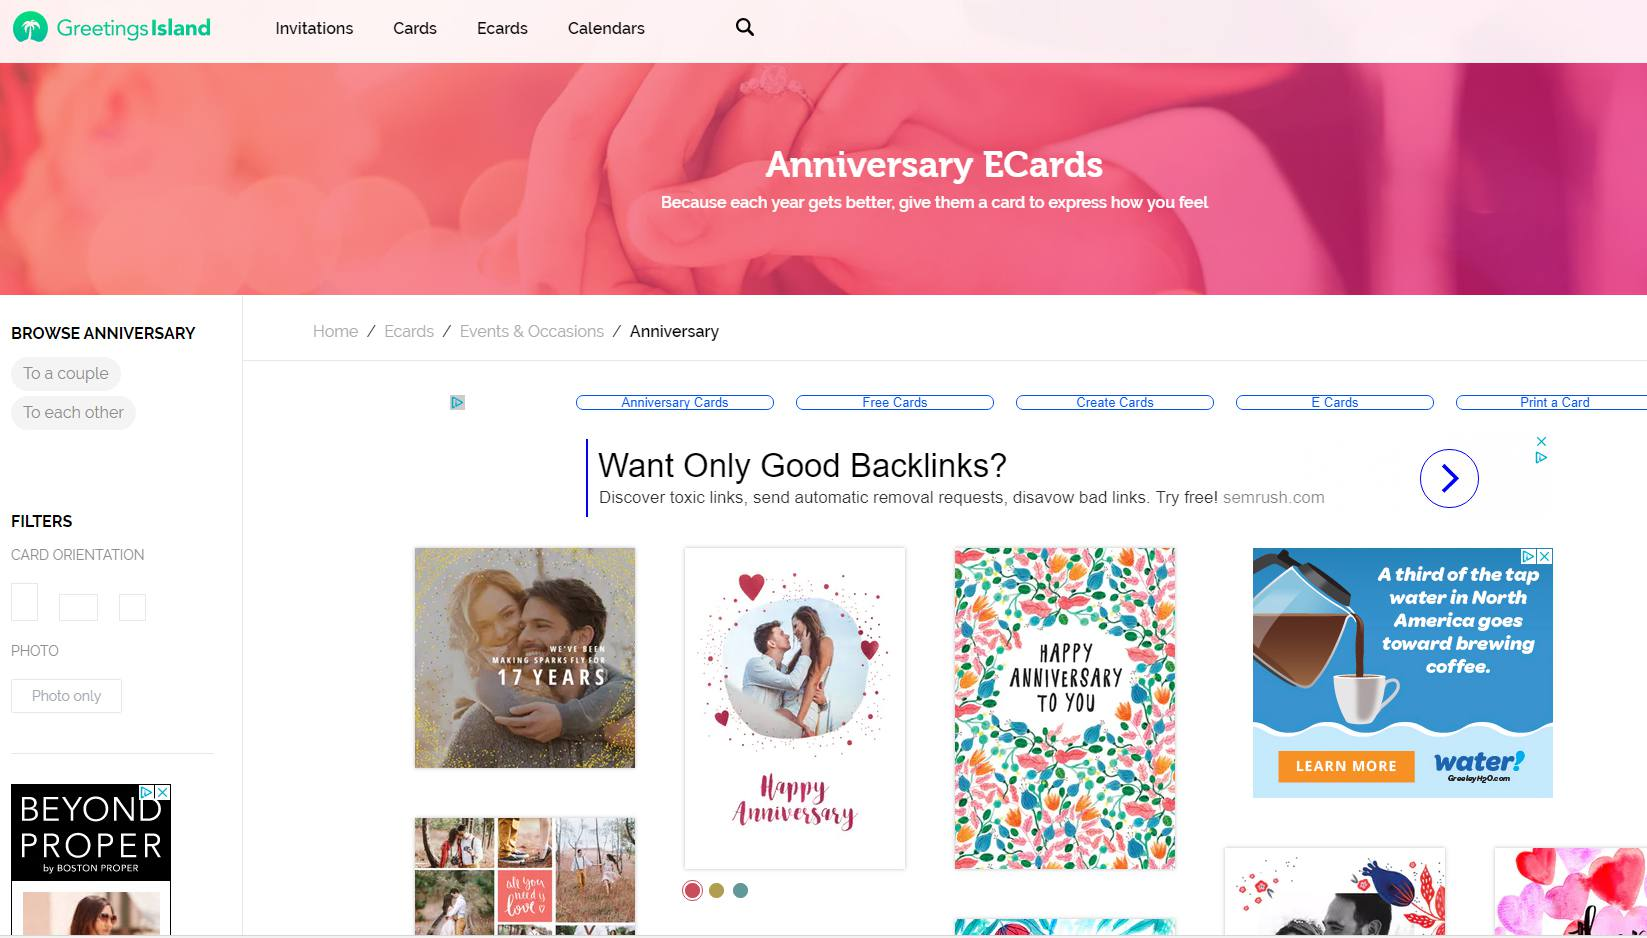 A Selection Of Anniversary Ecards From Greetings Island